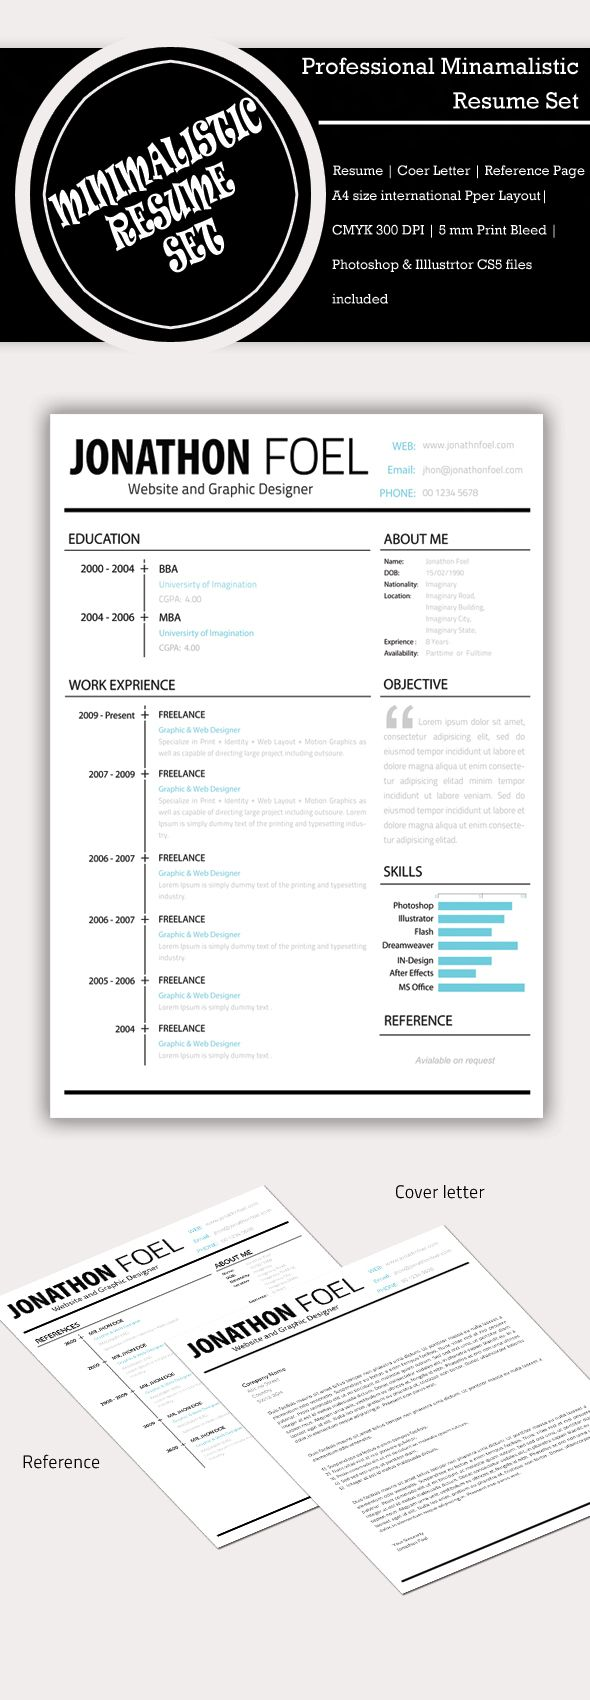 Best Currculos Images On   Resume Templates Cv Ideas